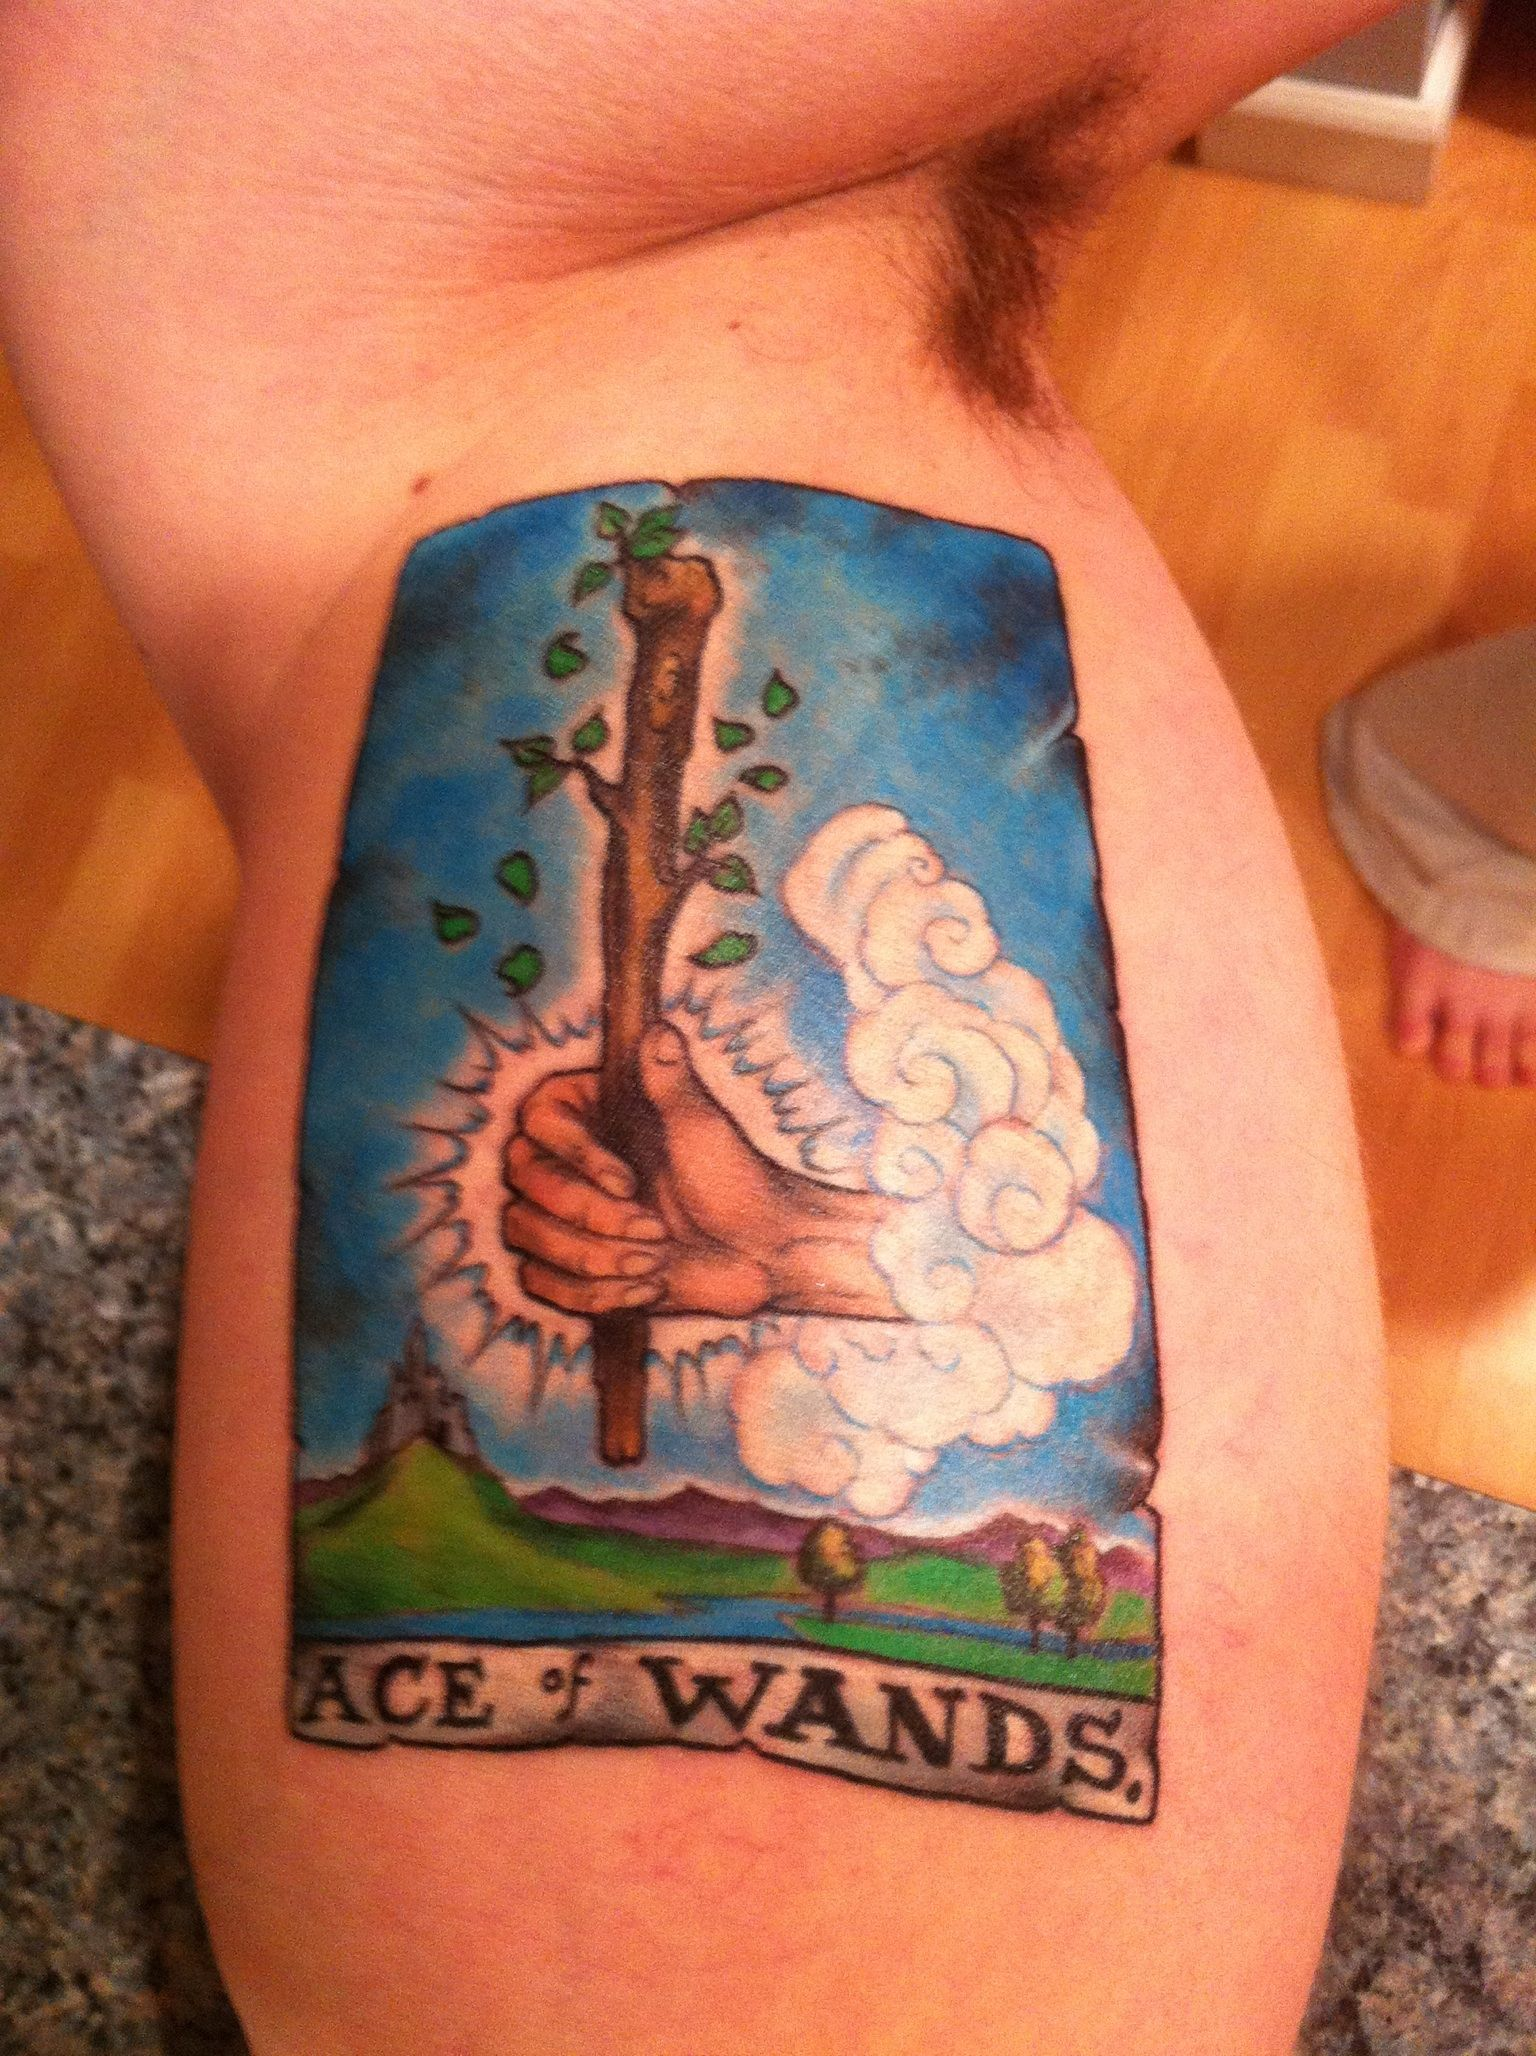 Ace of Wands tarot tattoo  (by Matt Lukesh)